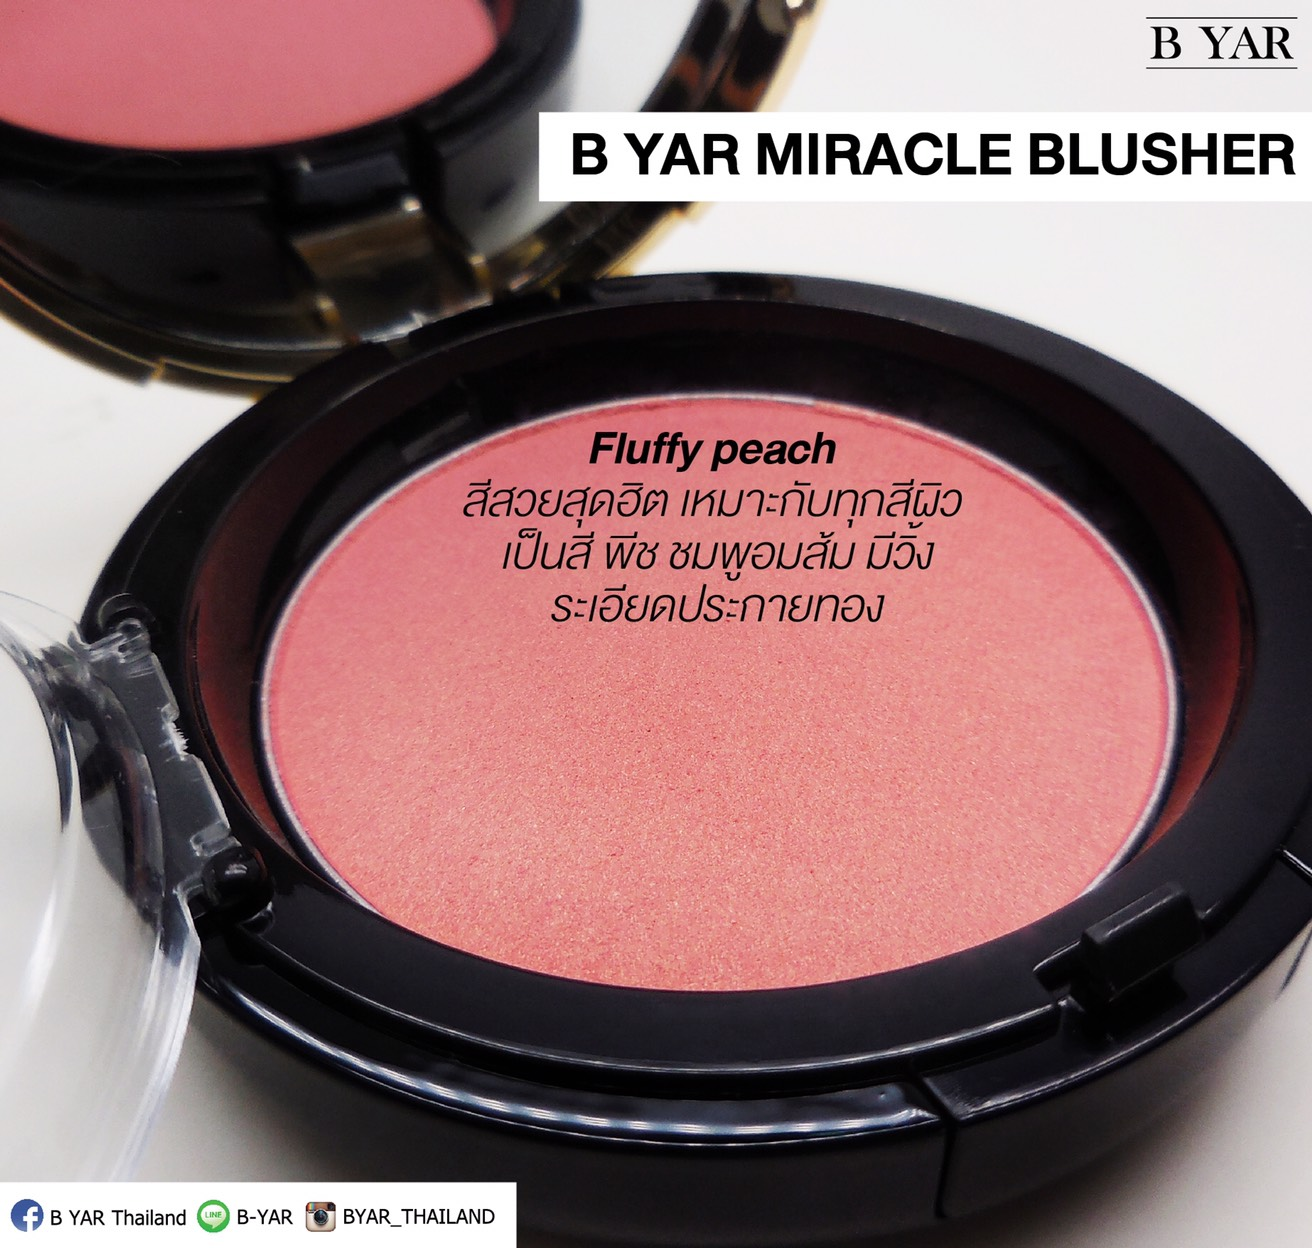 B YAR Miracle Blusher #Fluffy peach